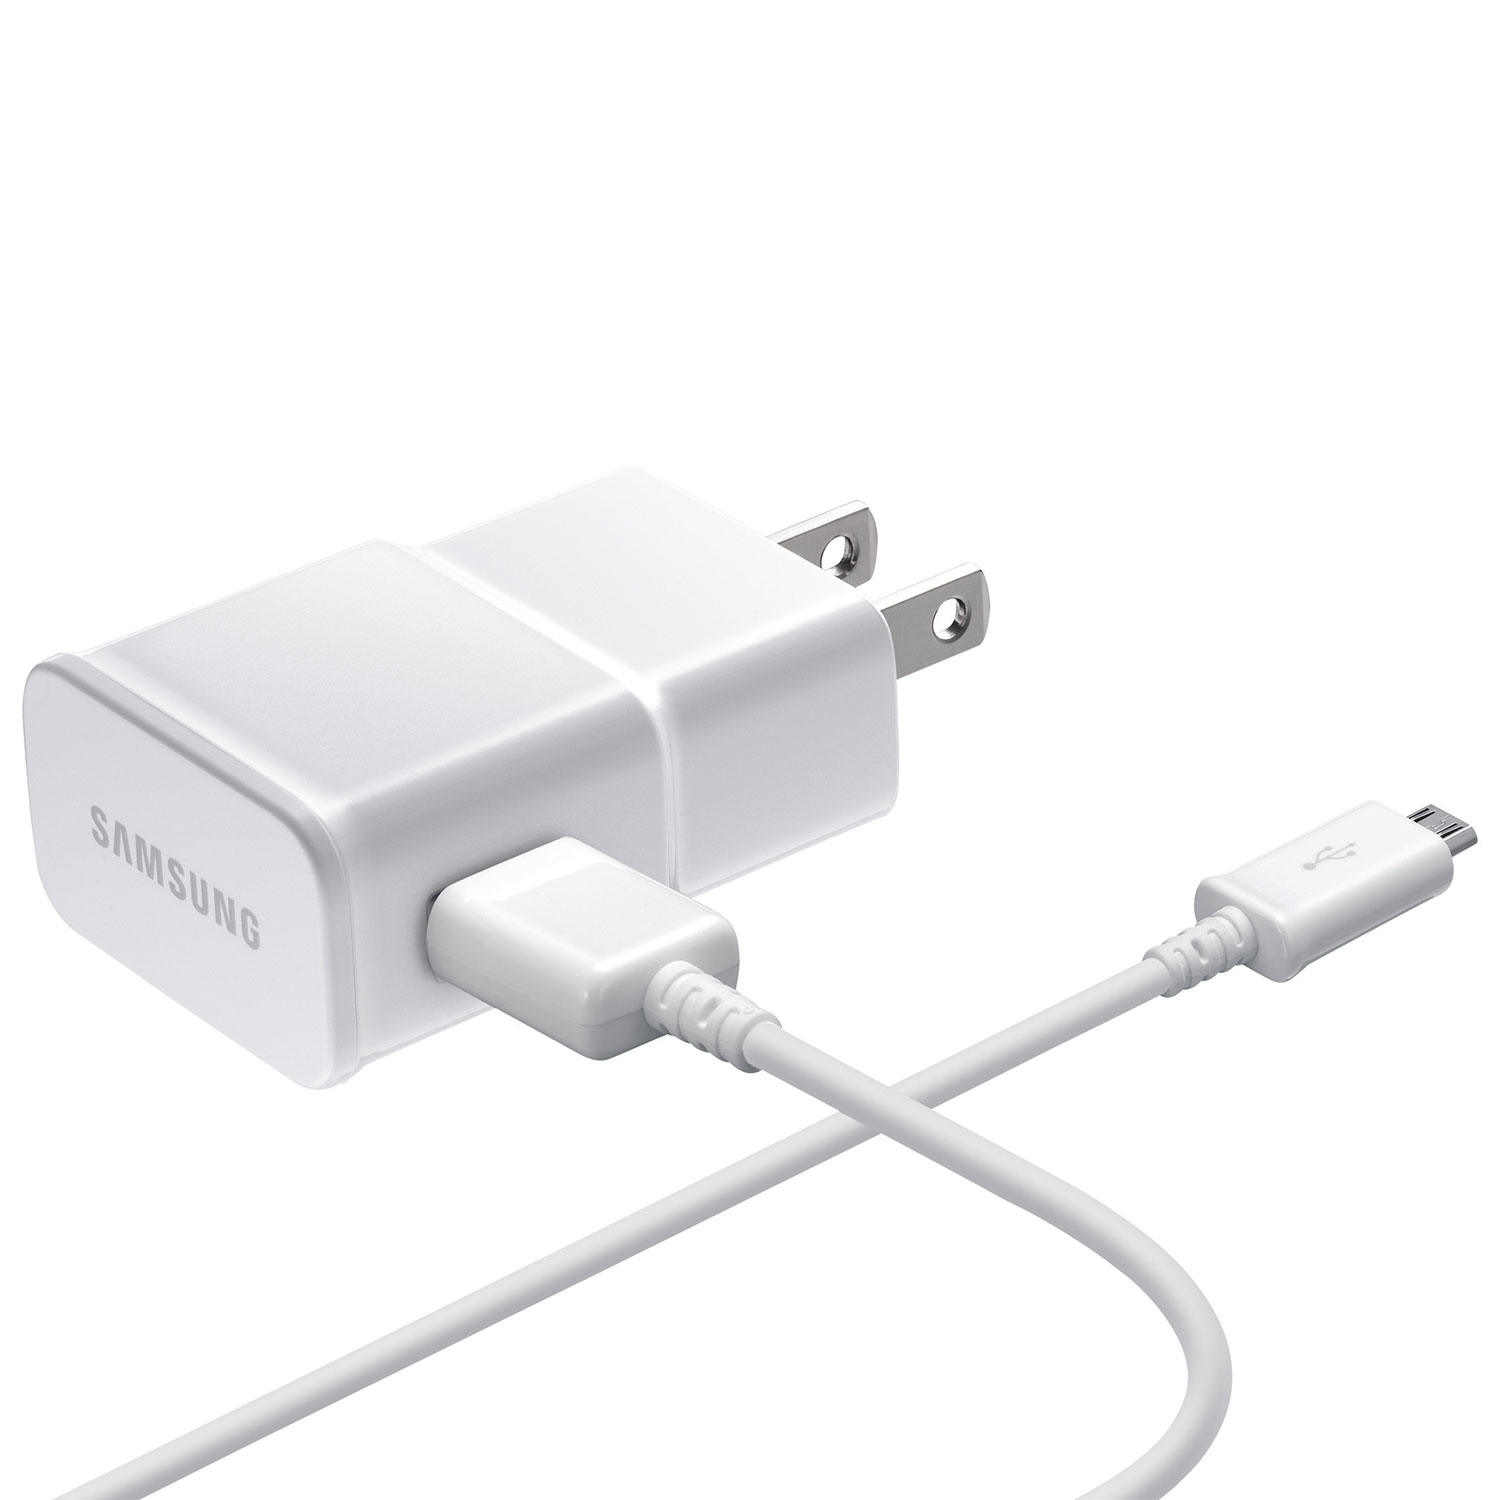 Samsung 1 m 3 ft adaptive fast charging microusb wall charger ep adaptive fast charging microusb wall charger ep ta20jweugca white usb homewall chargers best buy canada greentooth Gallery